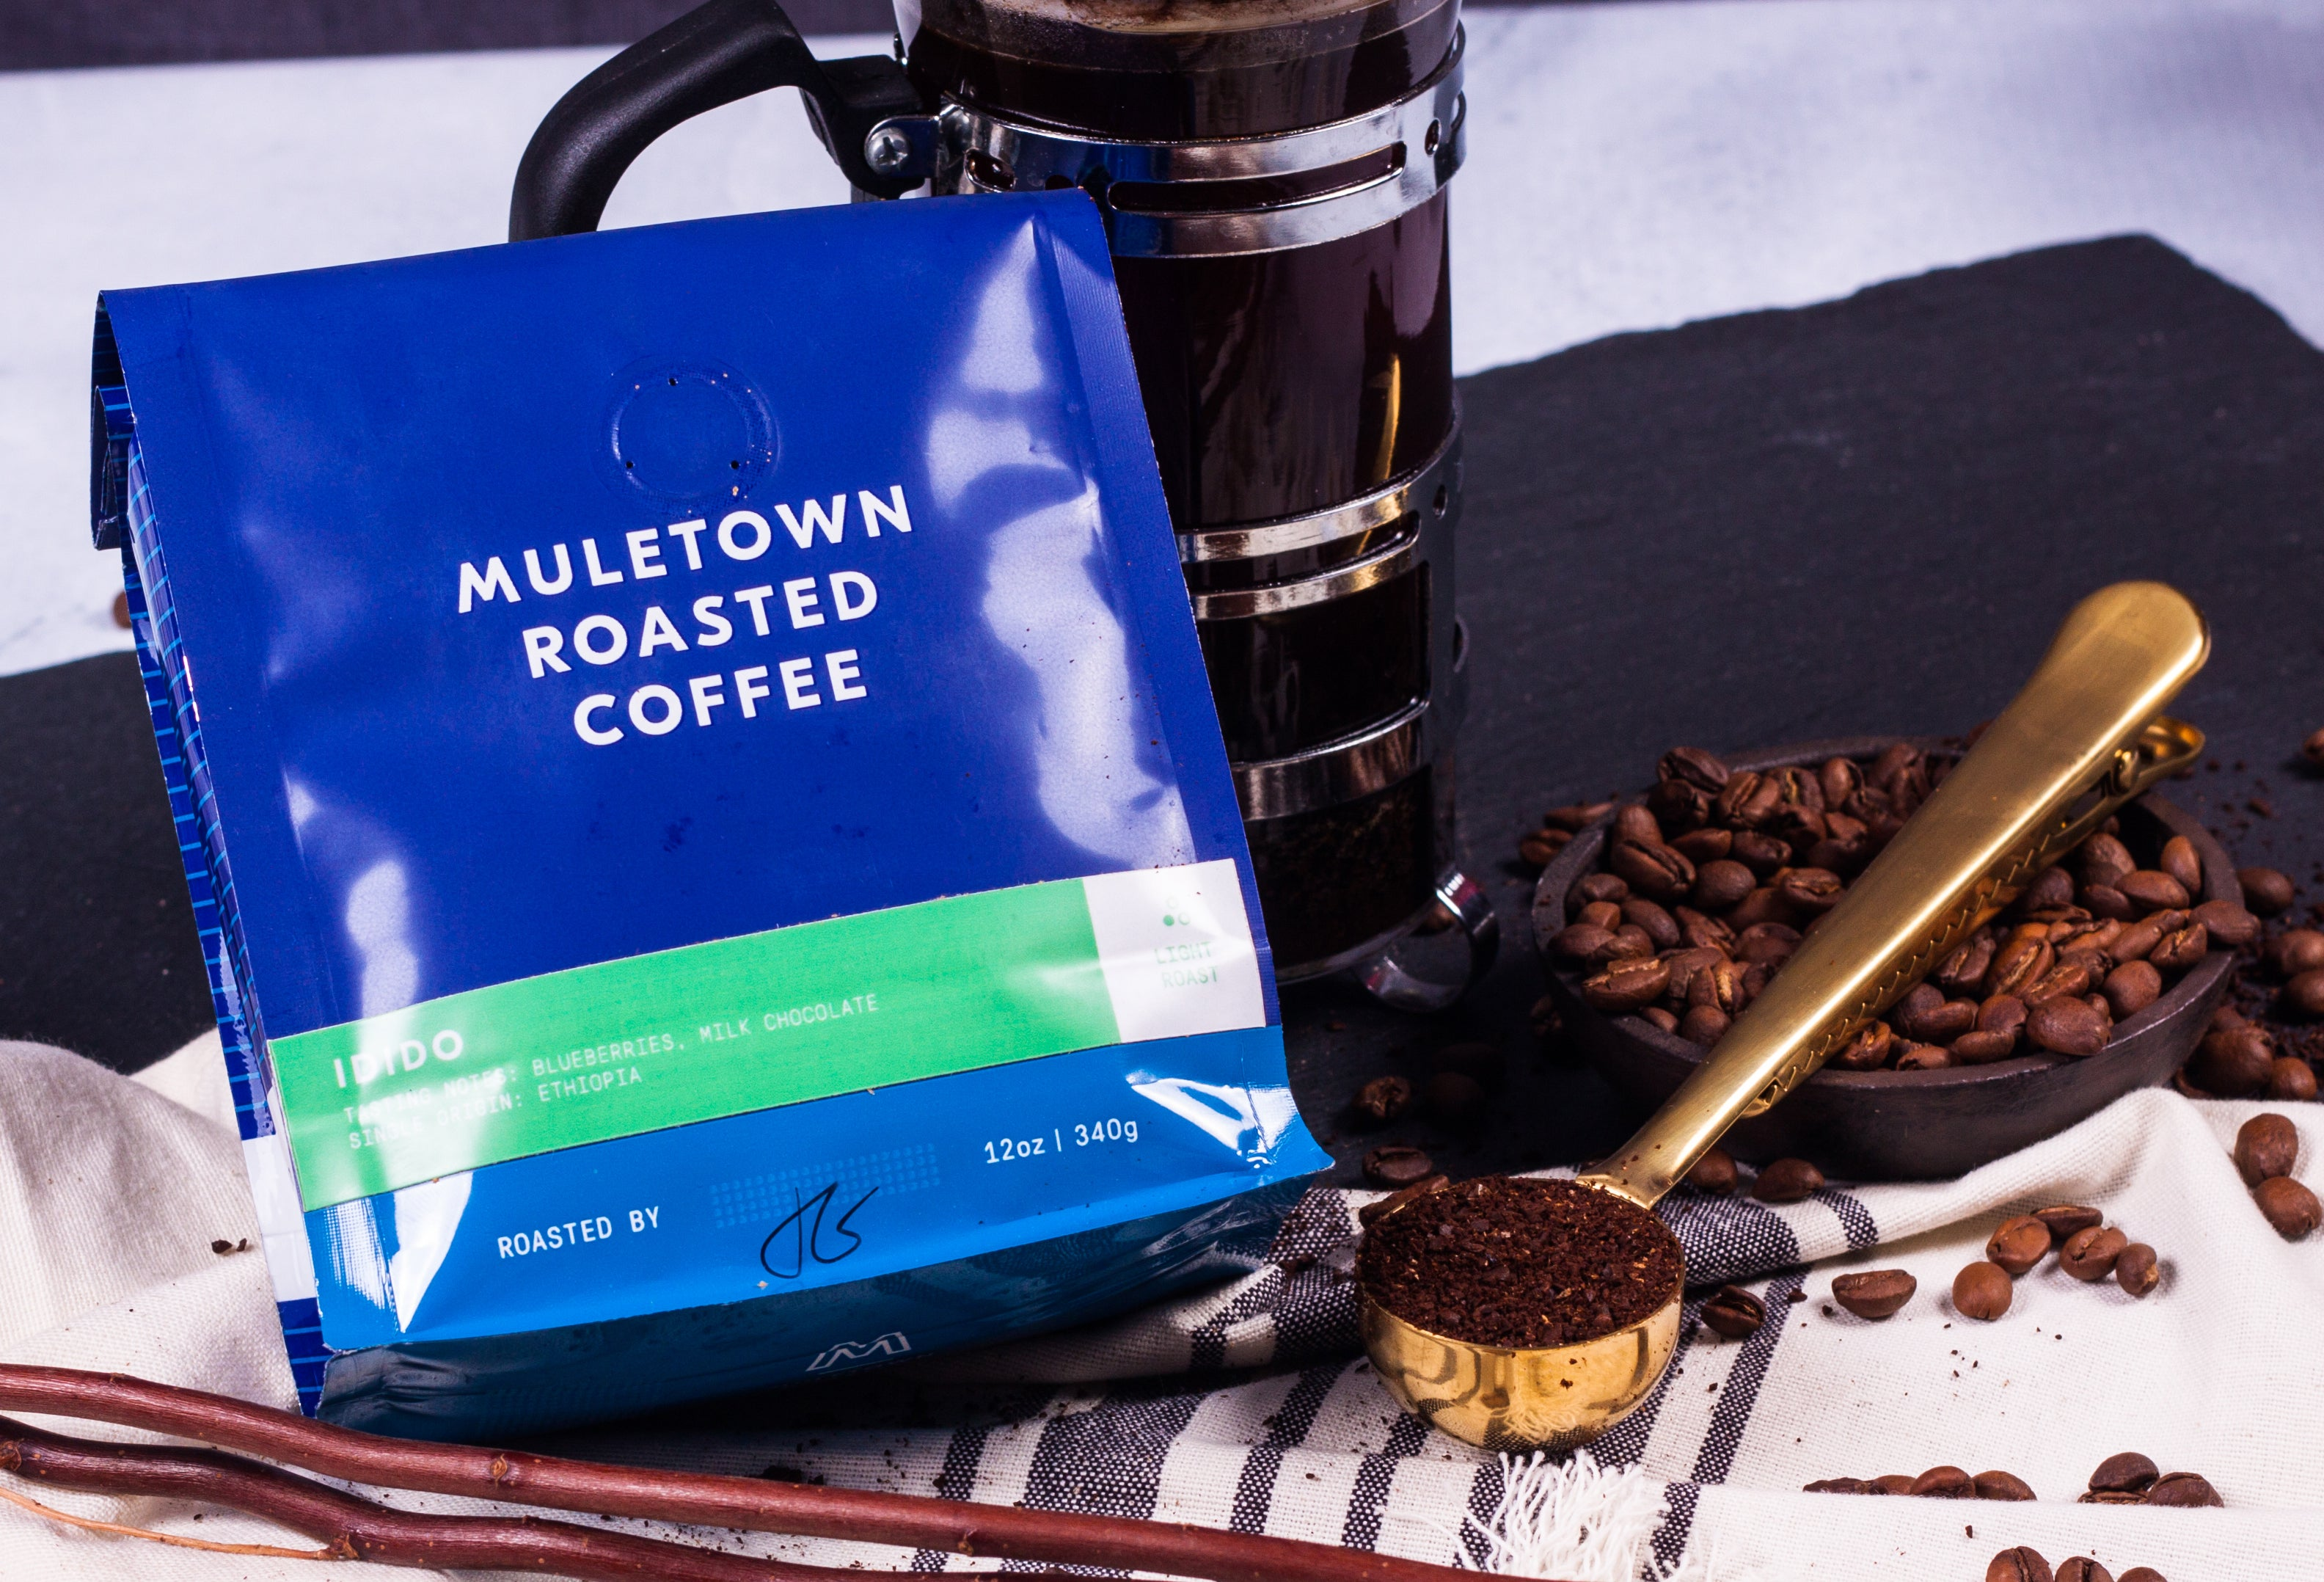 <a href='https://muletowncoffee.com/products/ethiopa-idido?variant=33170391052' target='_blank'> <b>Muletown Roasted Coffee - Ethiopia Idido Light Roast</b><br>